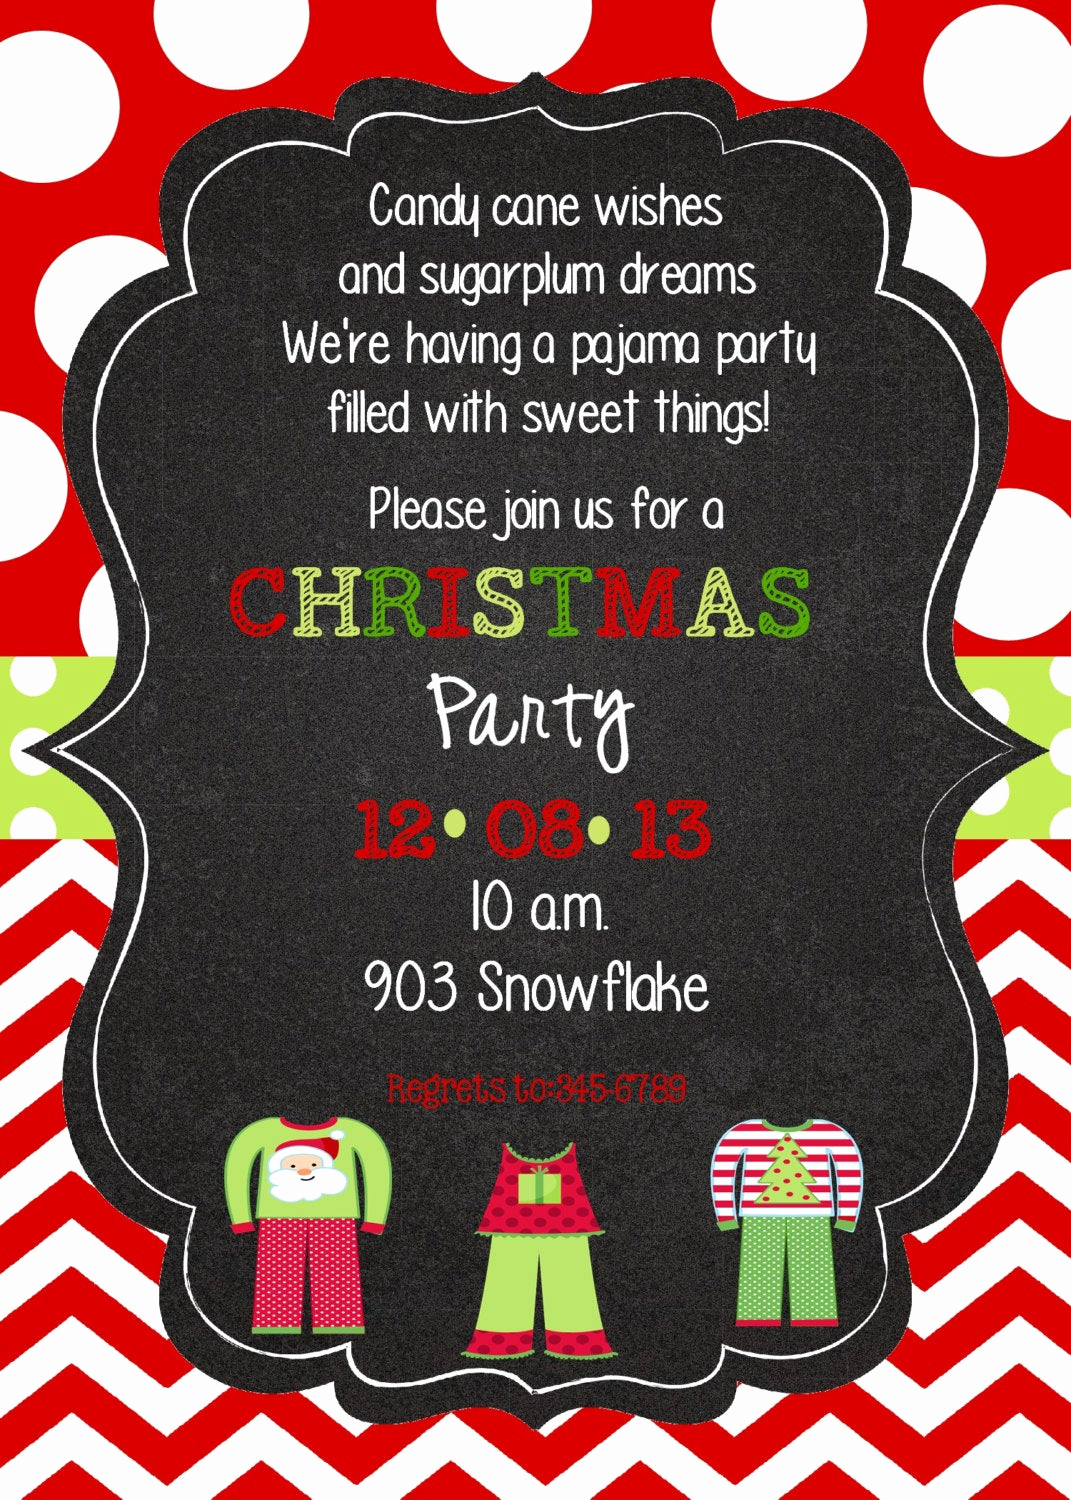 Pajama Party Invitation Wording Best Of Christmas Pajama Party Invitation Digital by Stickerchic